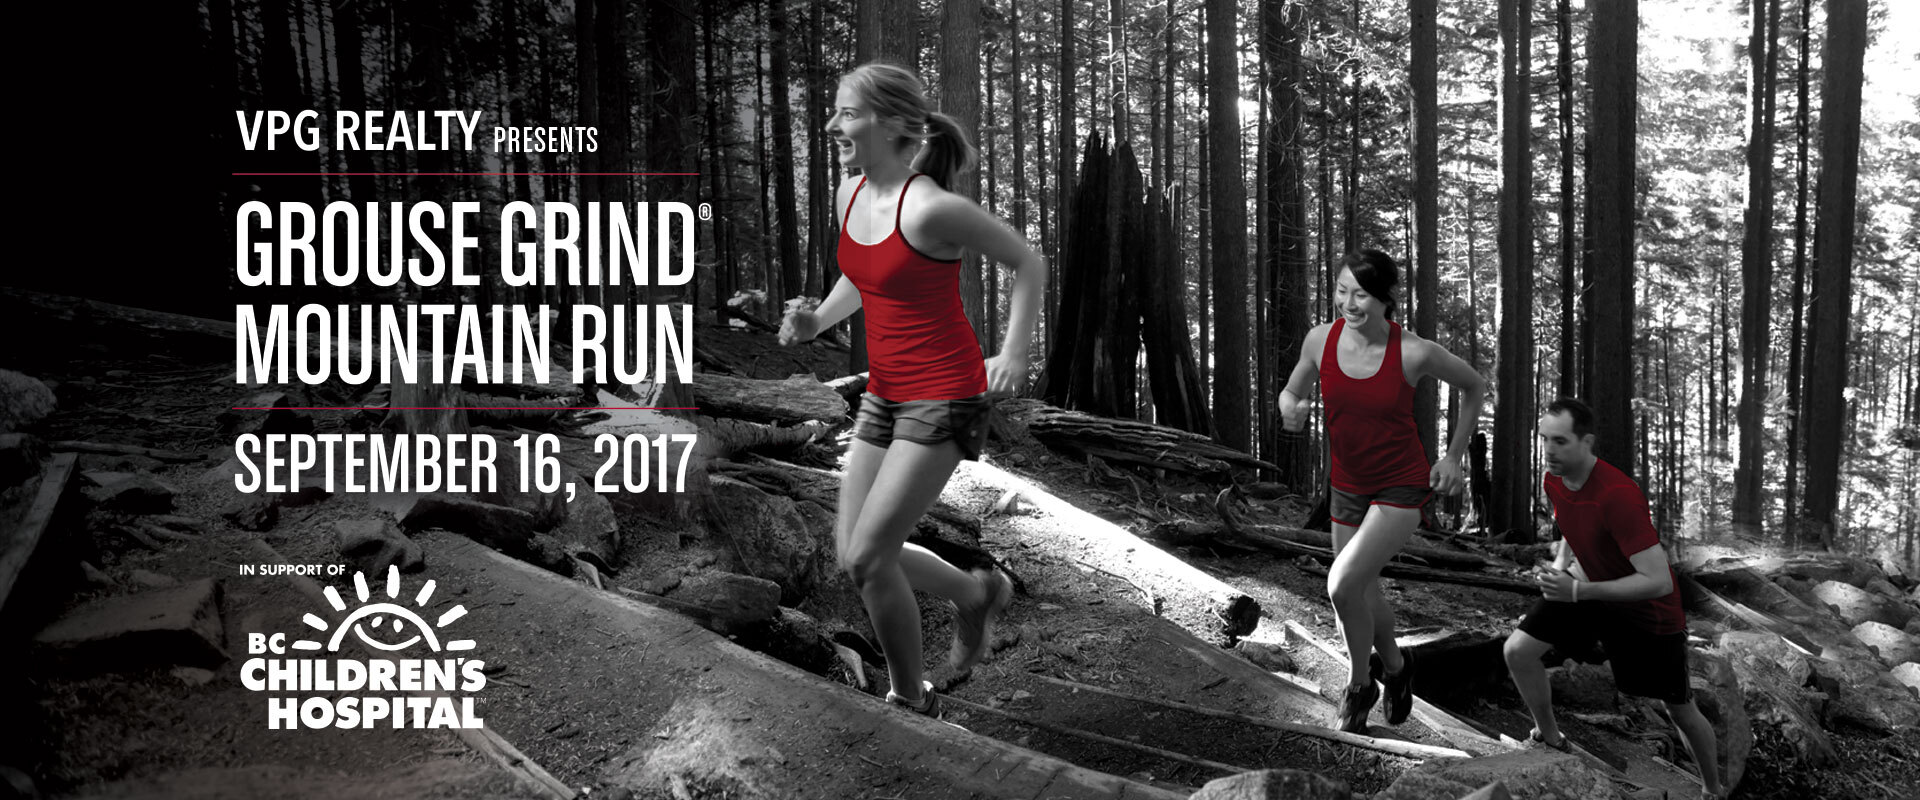 Join us September 16th for the Grouse Grind Mountain Run